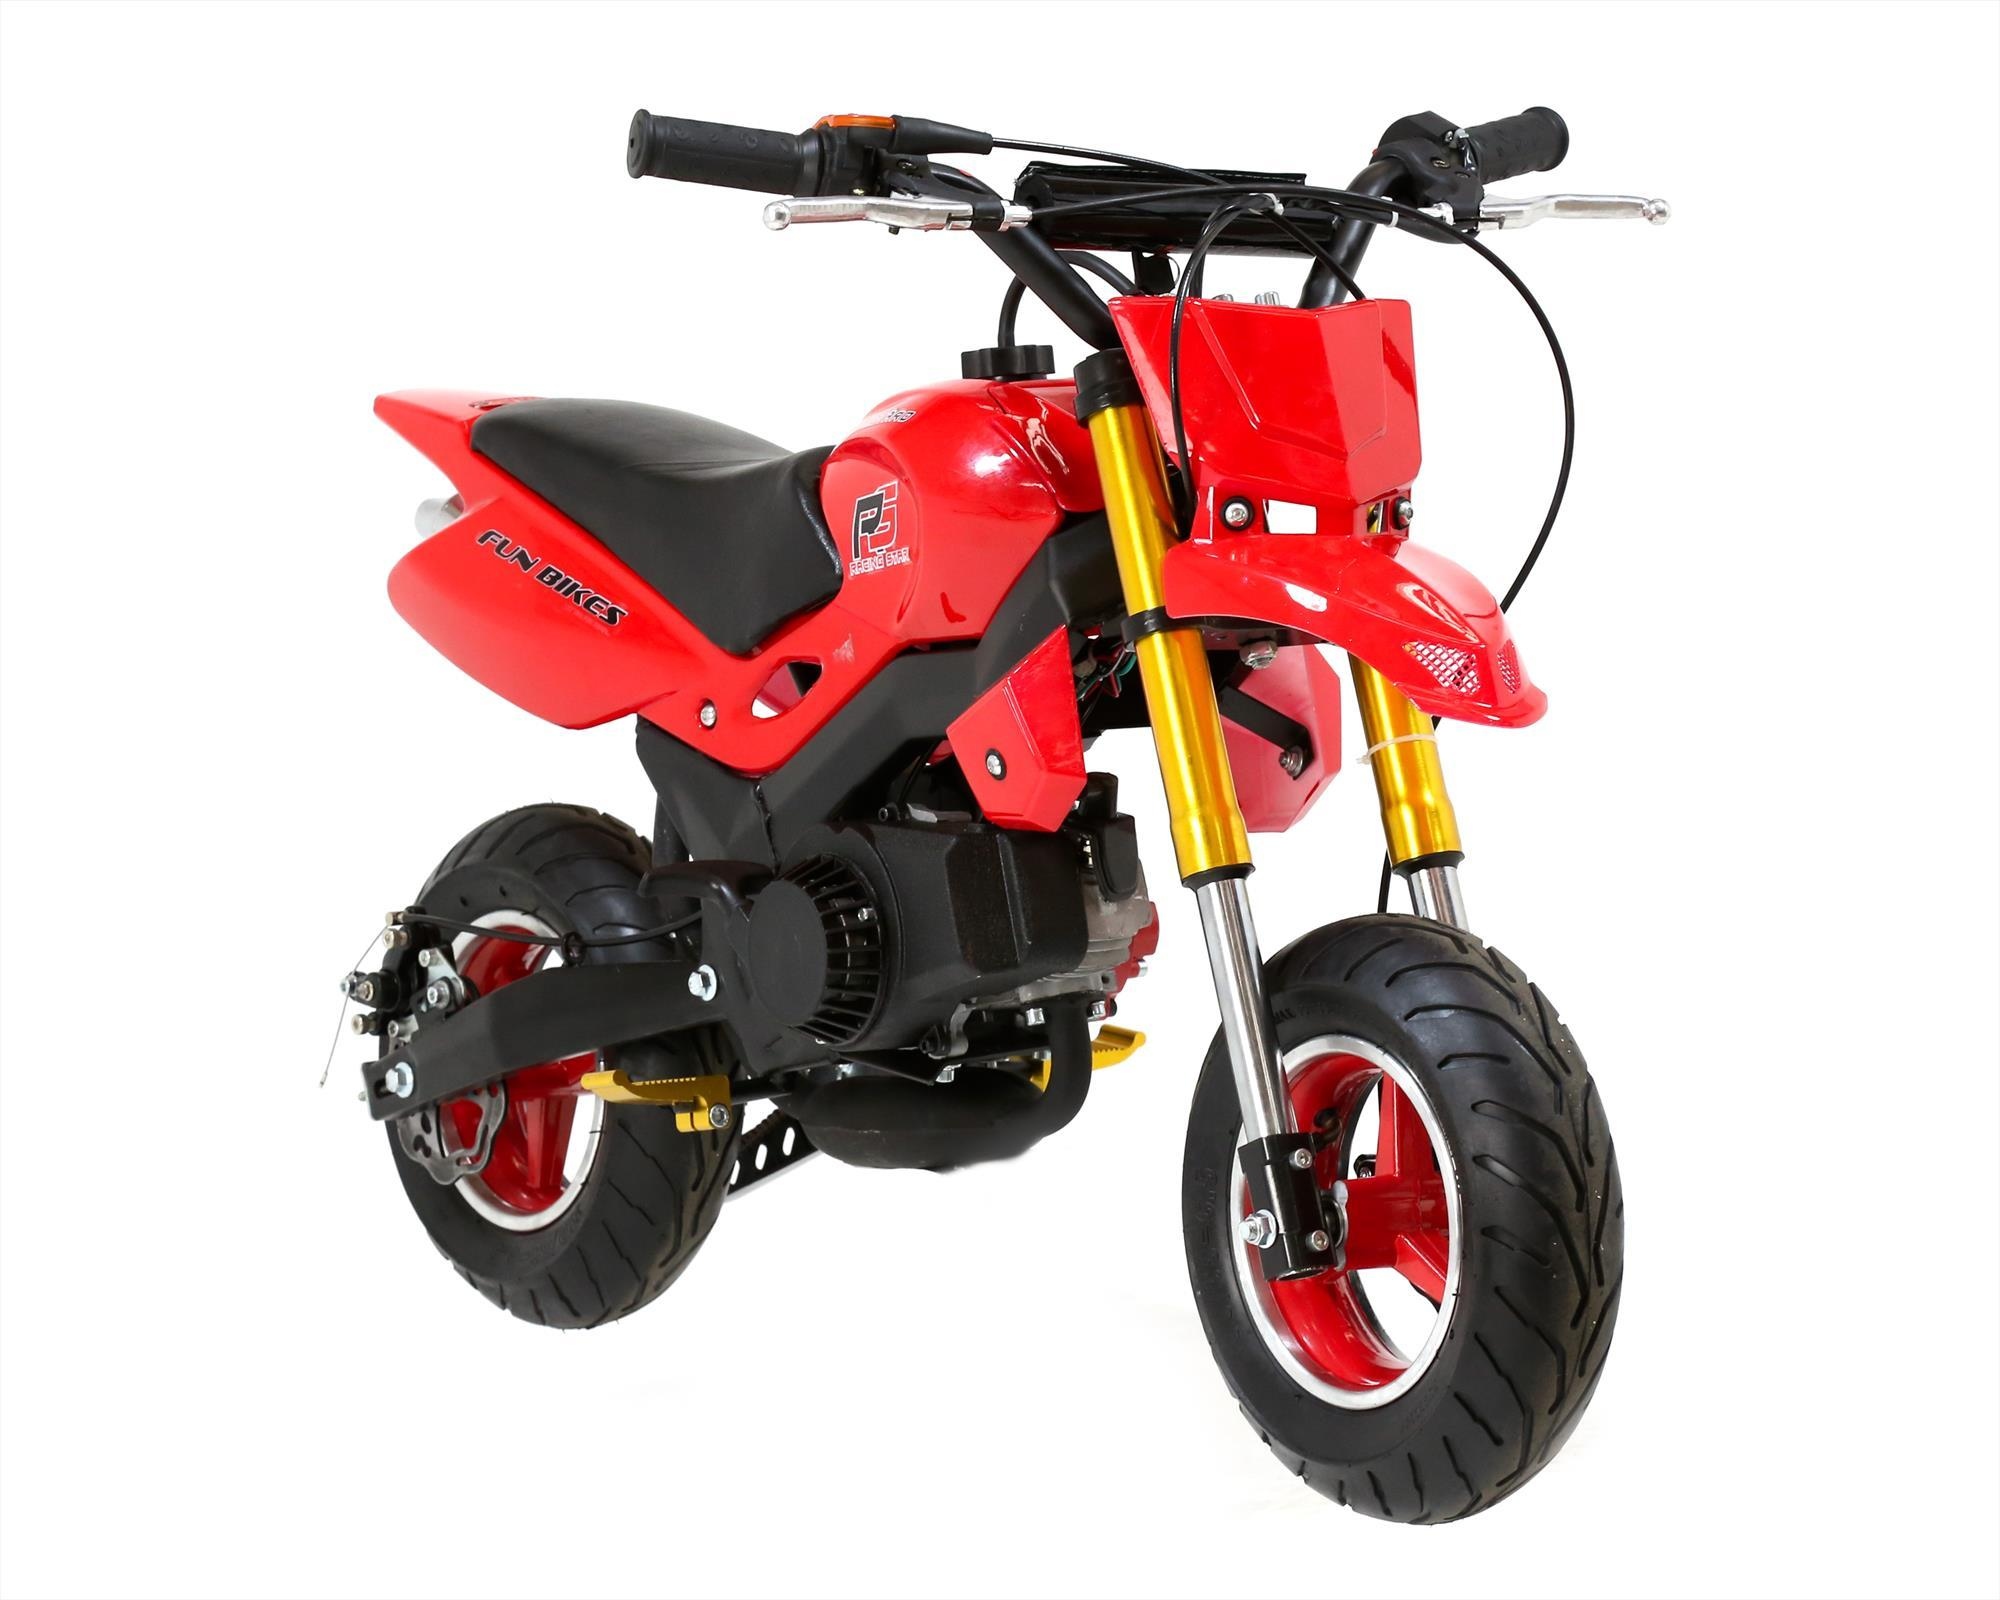 funbikes super motard 50cc 48cm petrol red mini moto bike. Black Bedroom Furniture Sets. Home Design Ideas